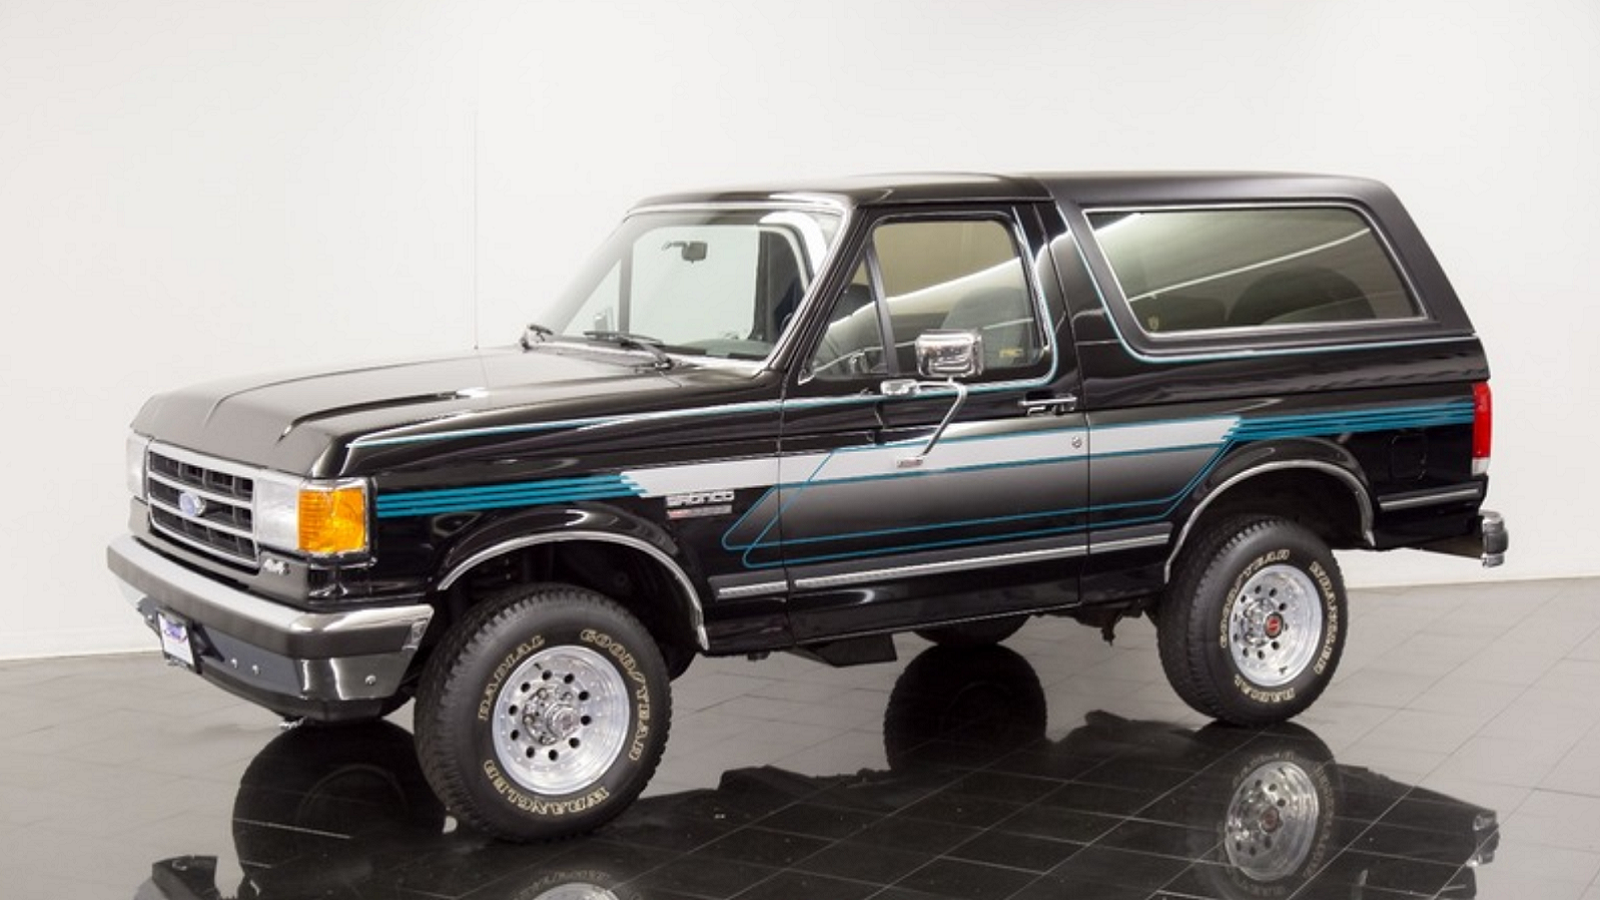 23K Mile 1990 Ford Bronco Will Take You Back